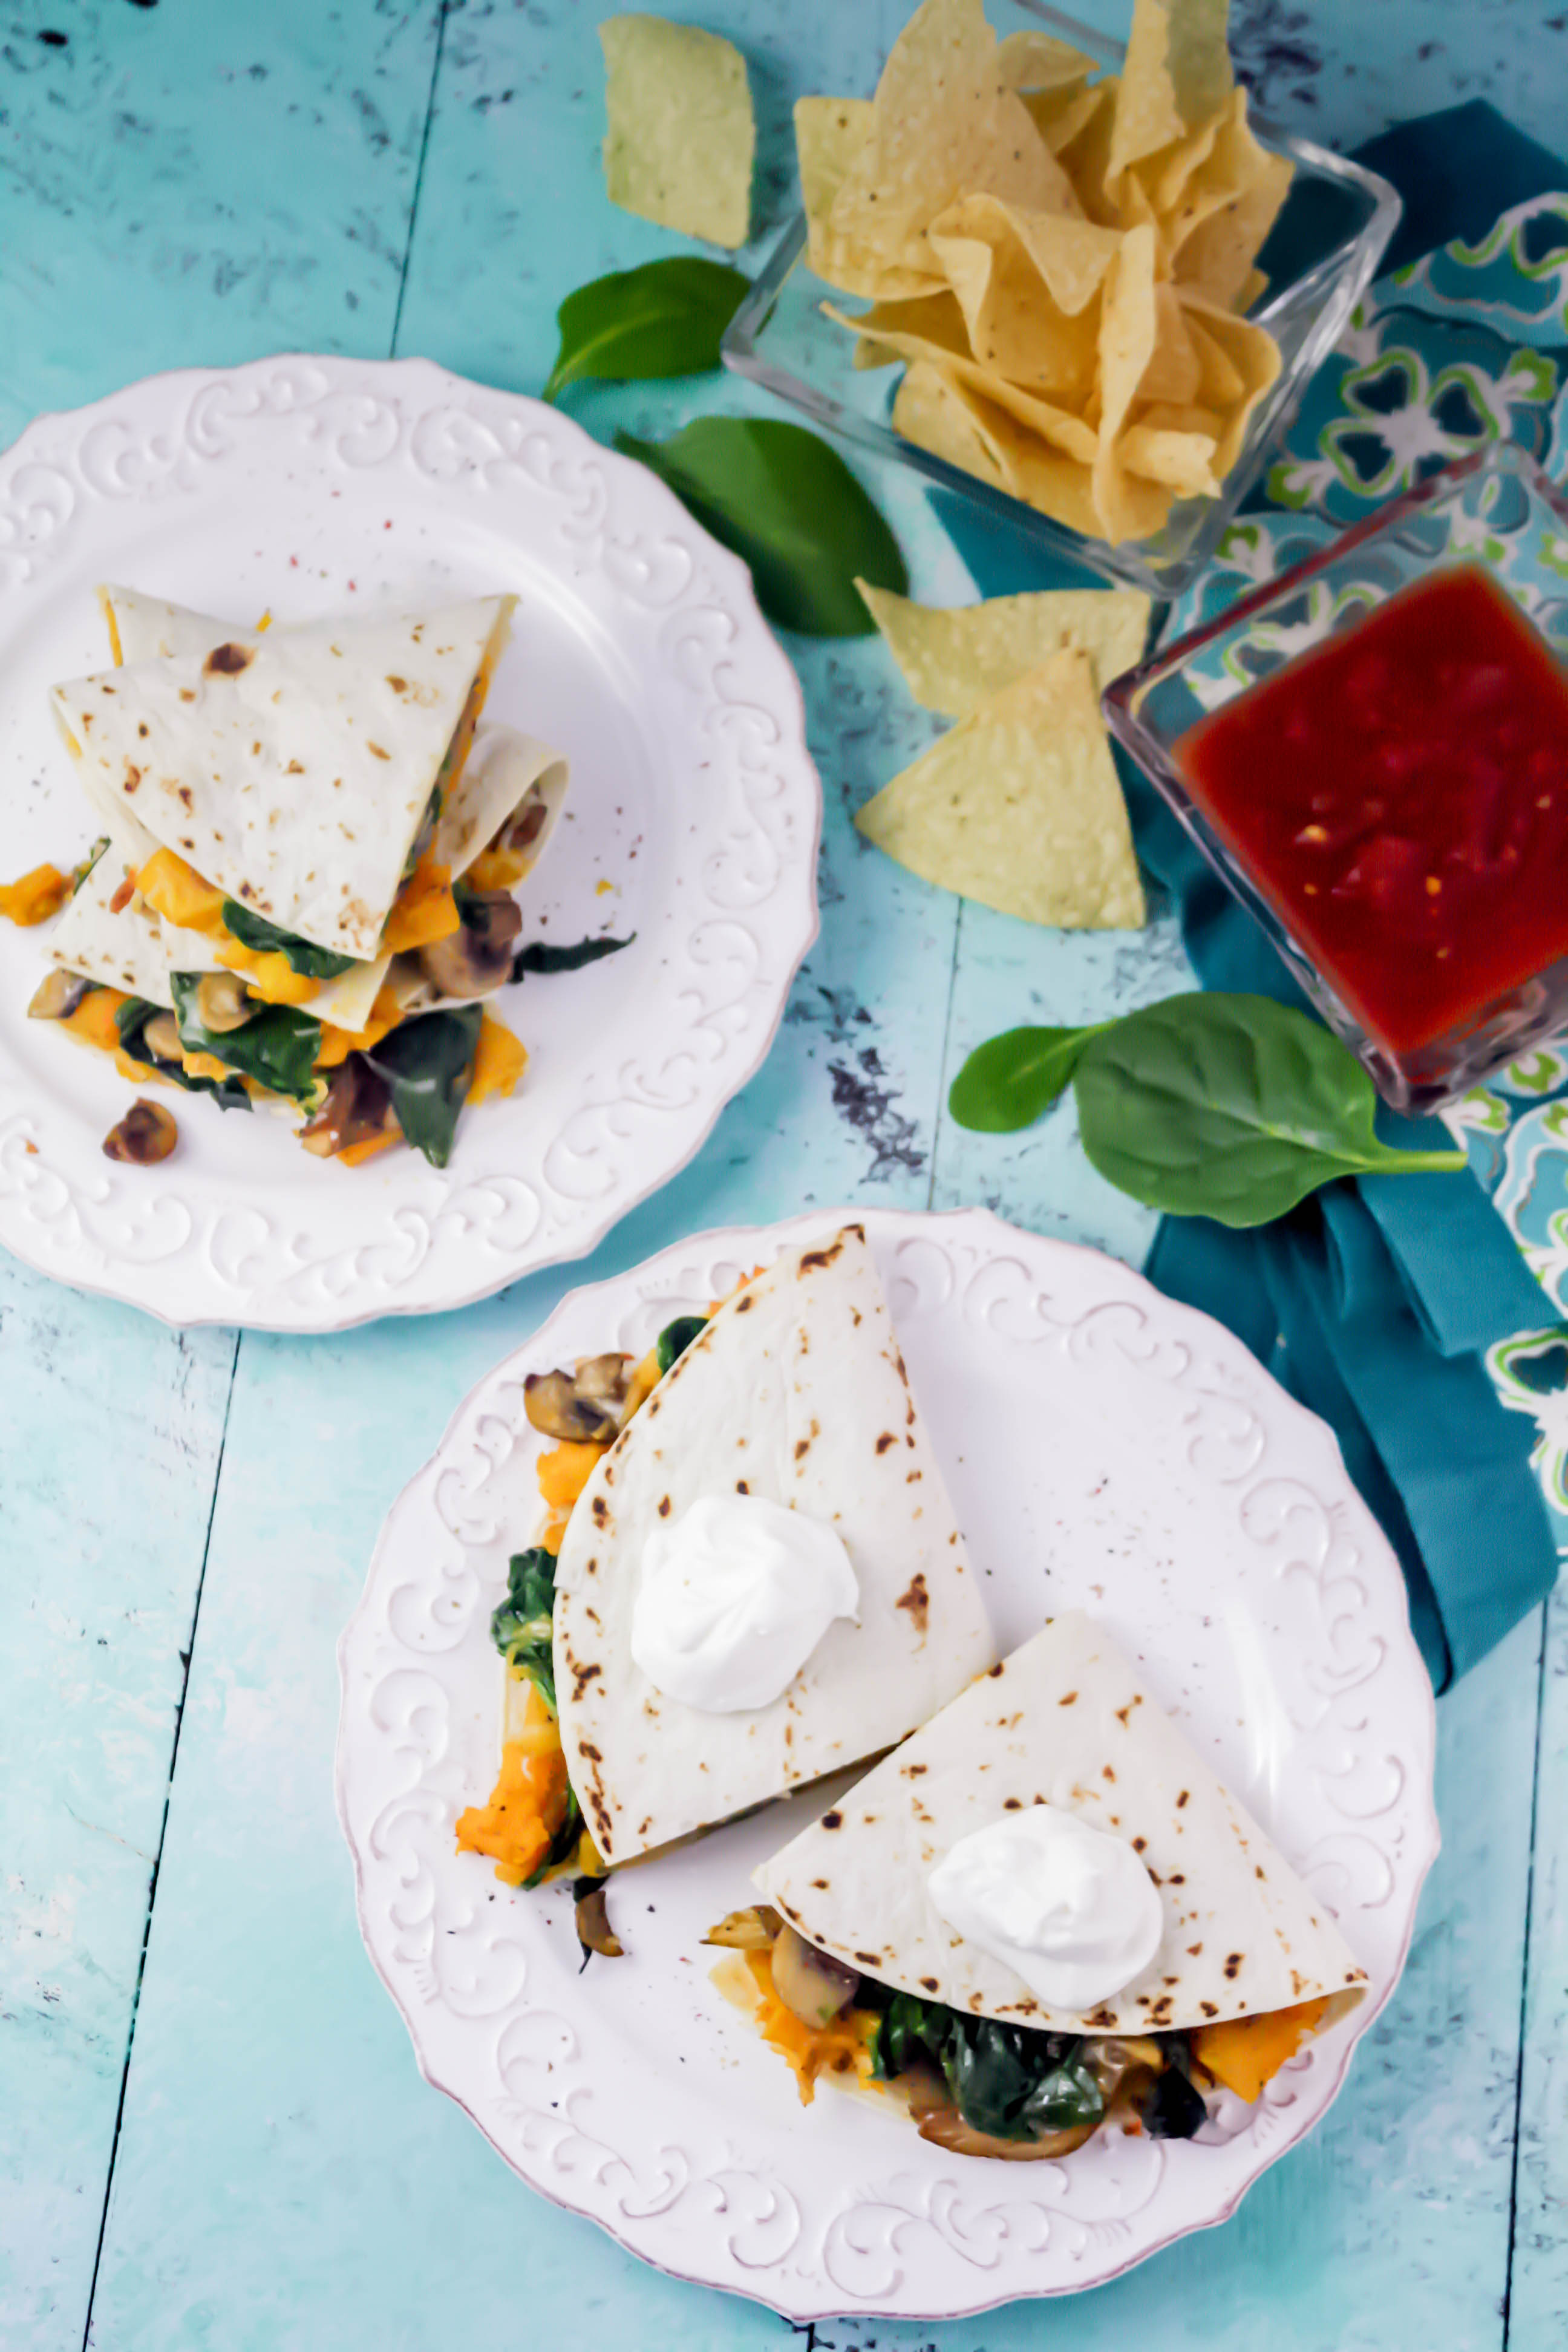 Butternut Squash, Mushroom, Onion, and Spinach Quesadillas are great with guac...or not! Butternut Squash, Mushroom, Onion, and Spinach Quesadillas are easy to make for your next meal.